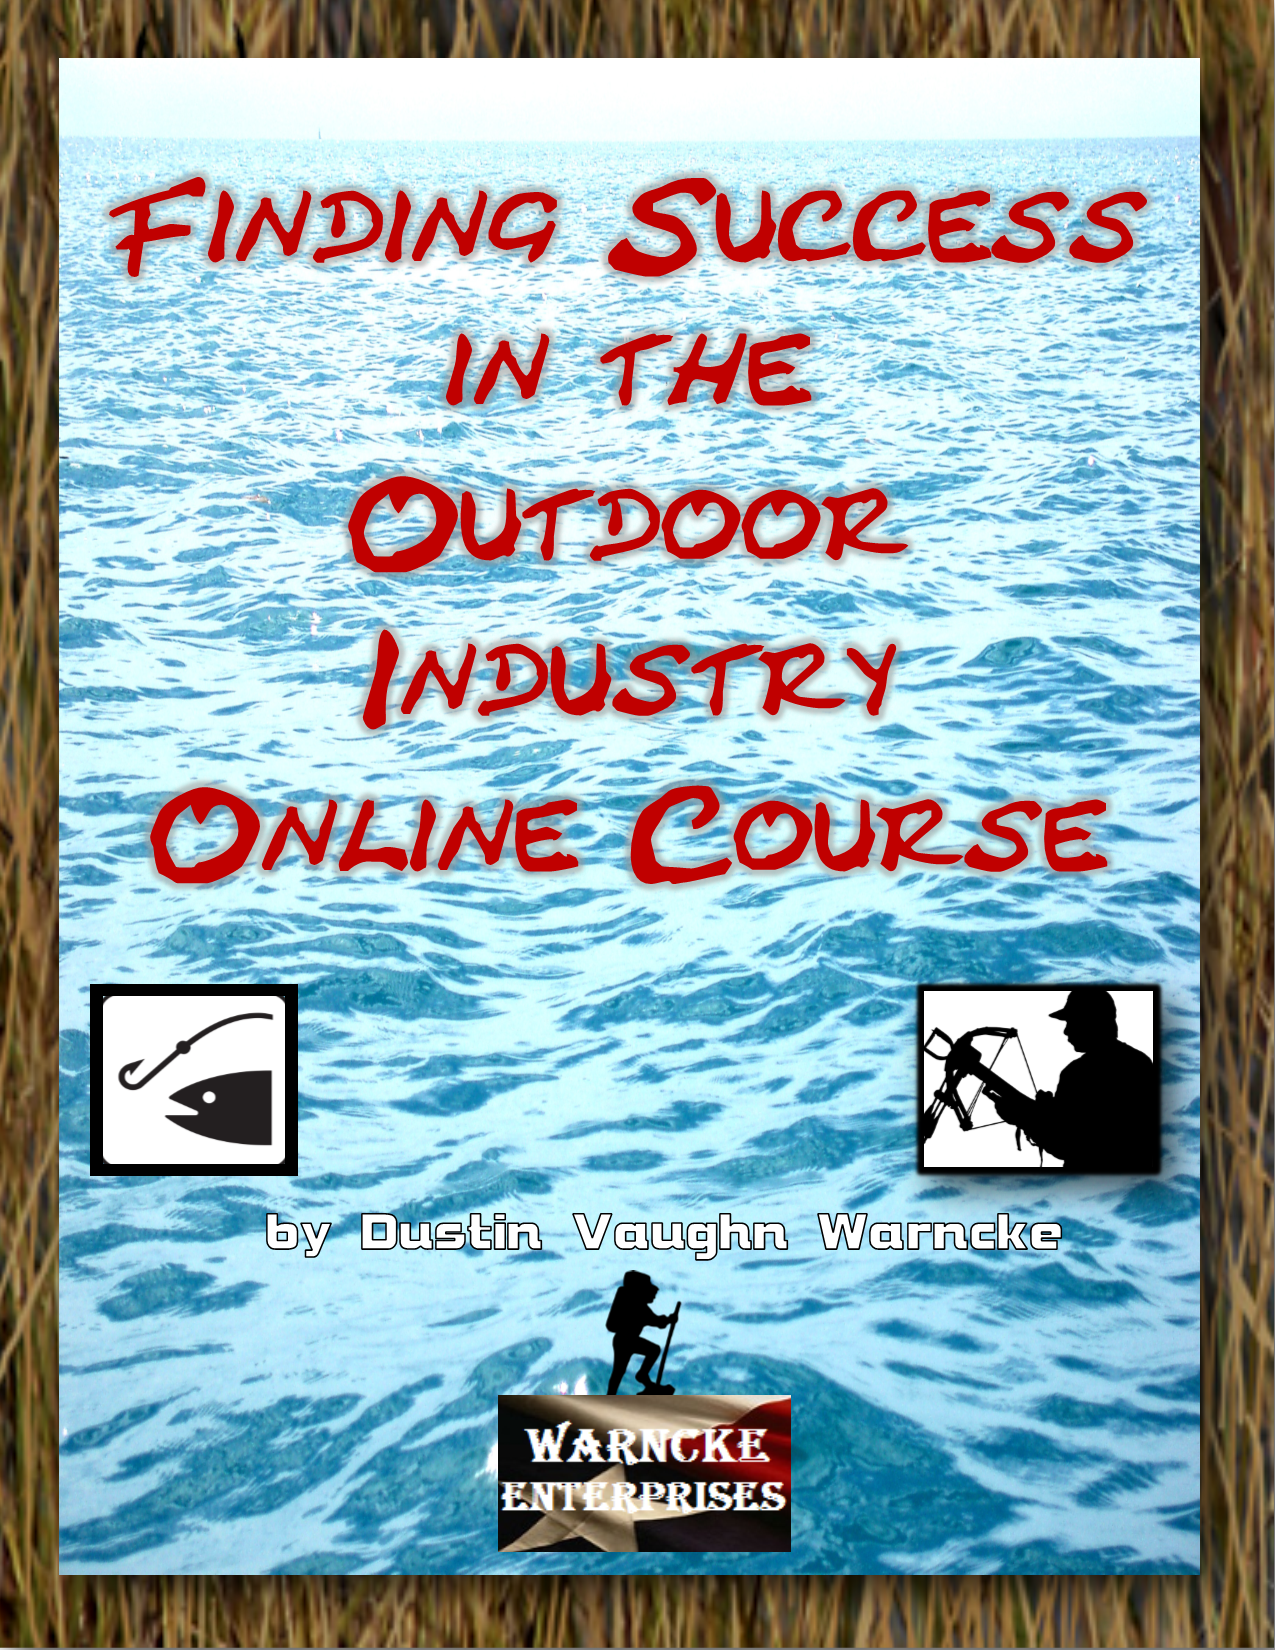 Finding Success in The Outdoor Industry Online Course, eBook, and Gear Guide Bundle